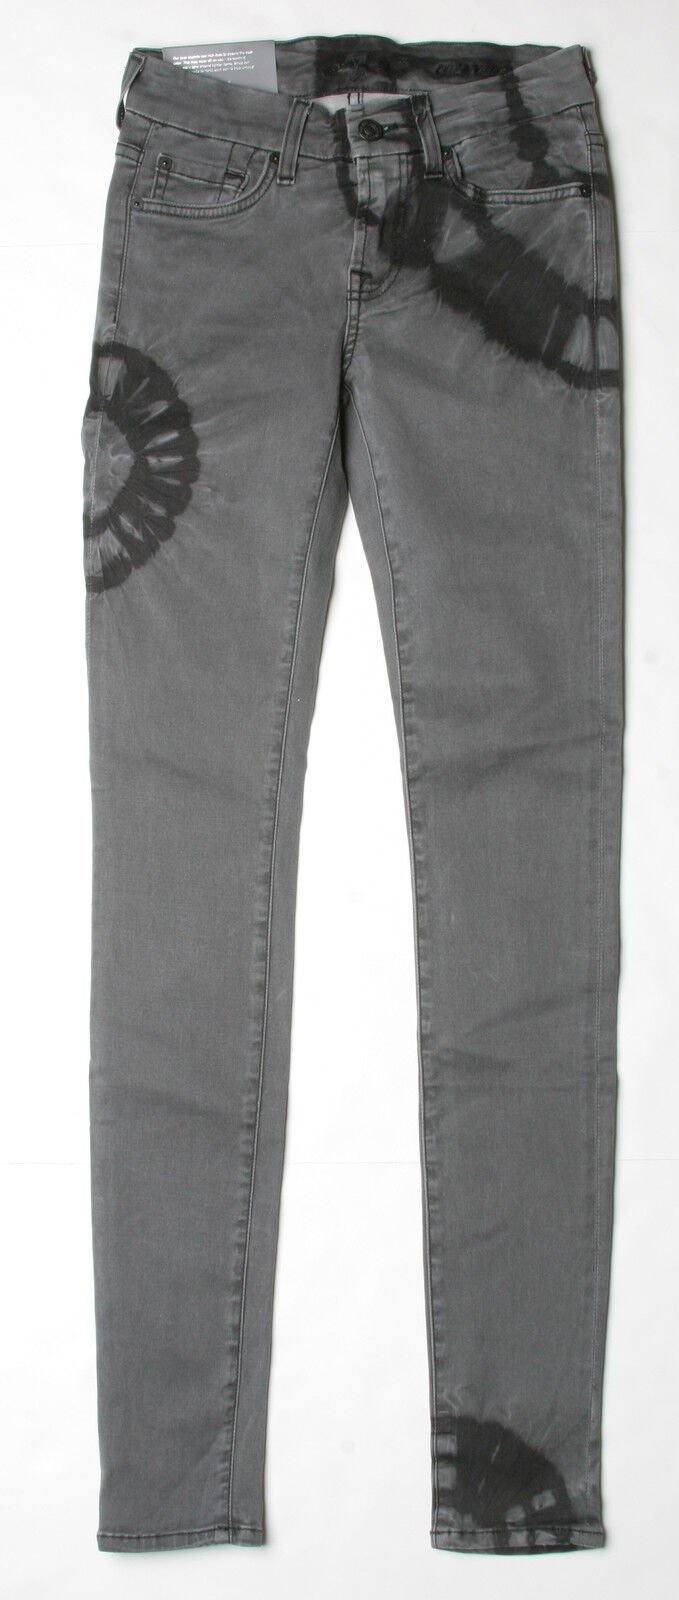 7 For All Mankind Gwenevere Super Skinny Jeans (27) Crystal Wash Grey AU0168660